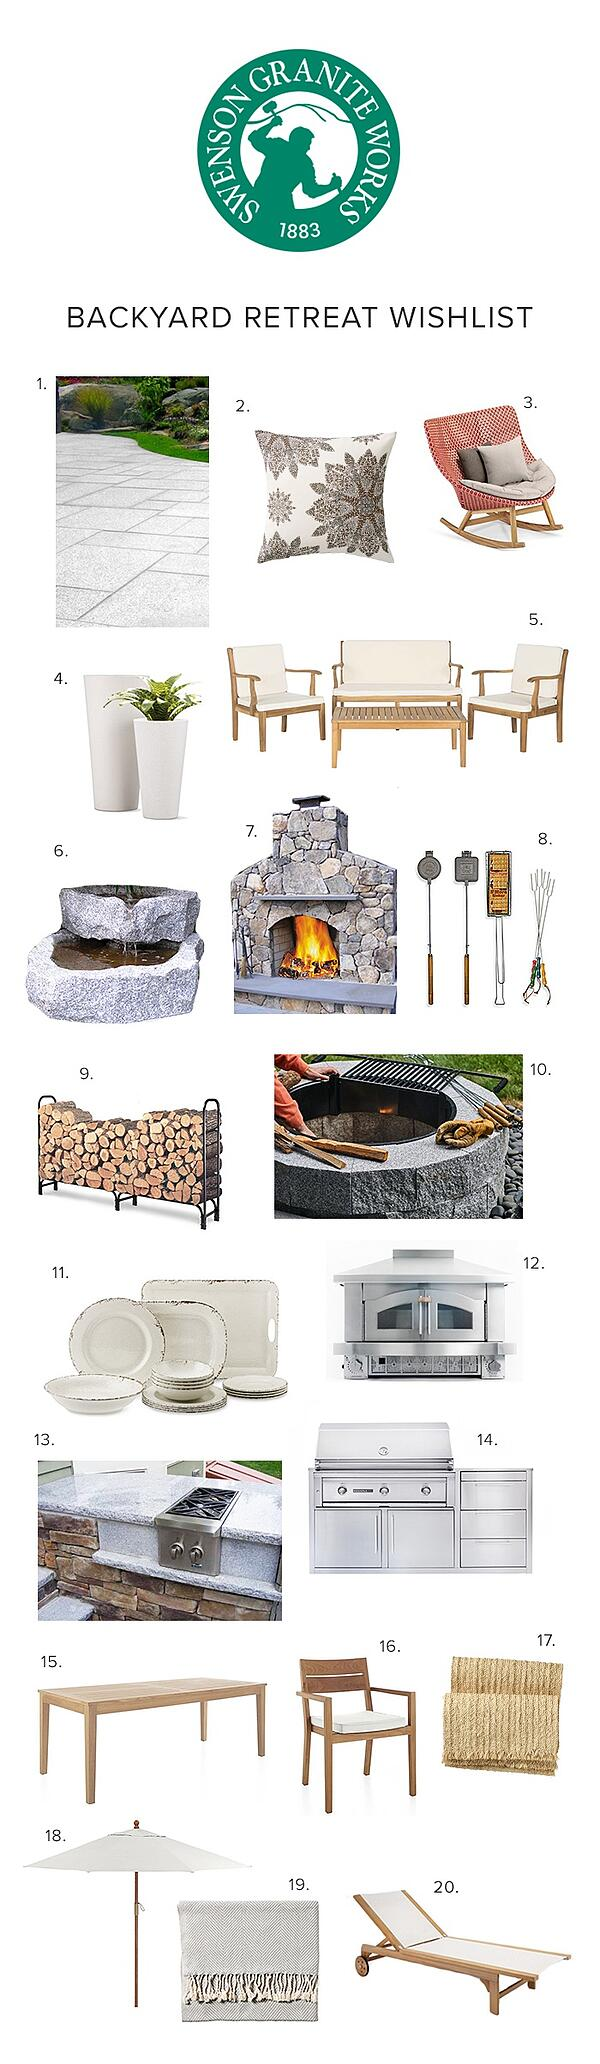 Swenson Backyard Retreat Wishlist